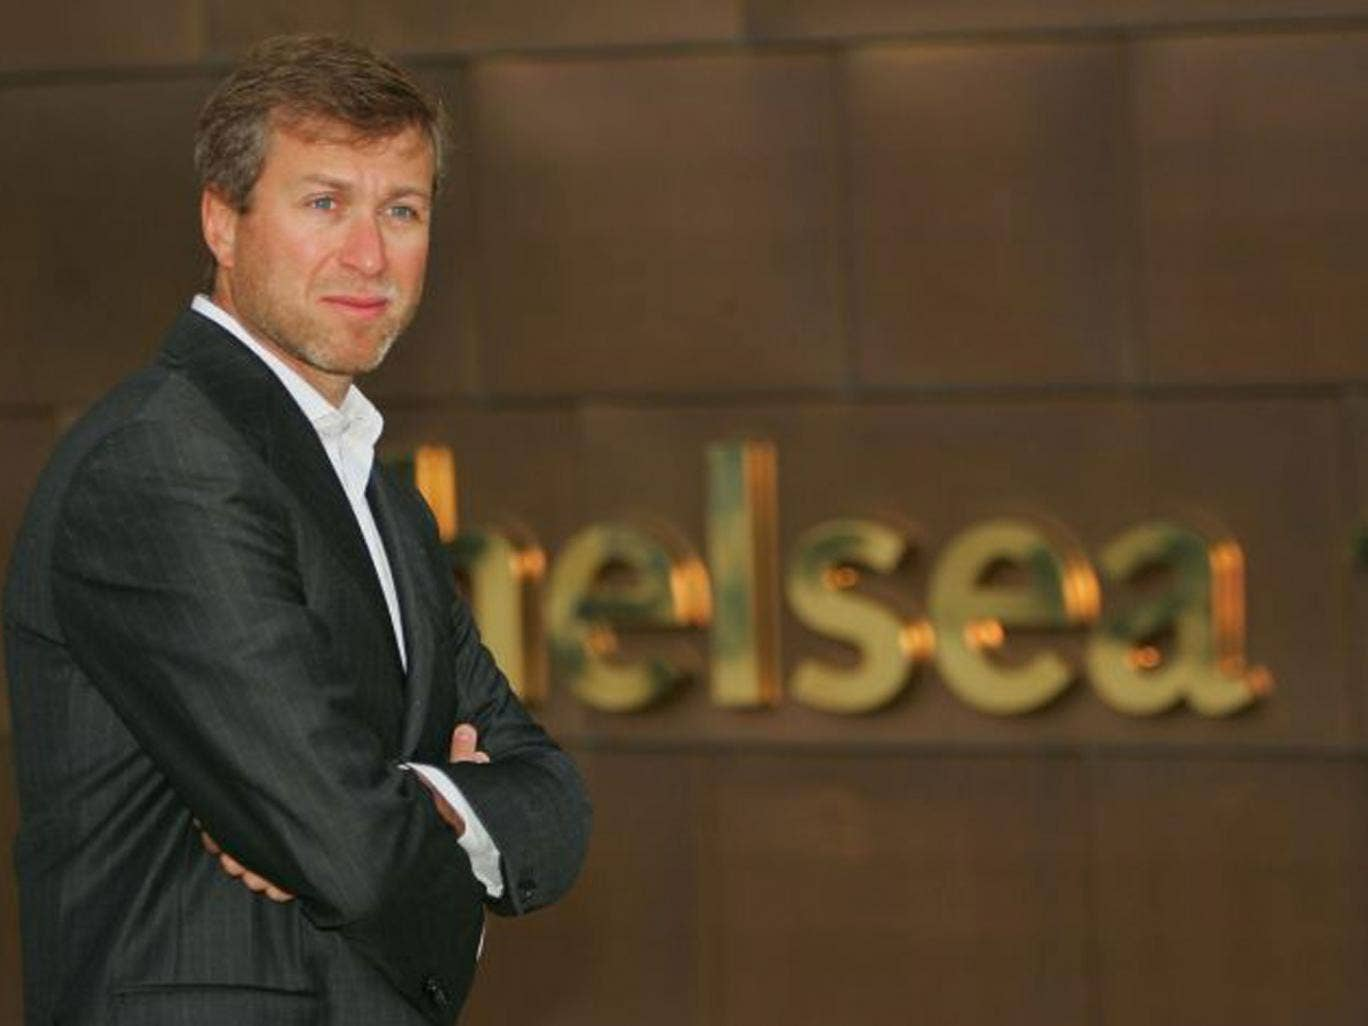 Bull's-eye: Roman Abramovich hits his target while archery misses out